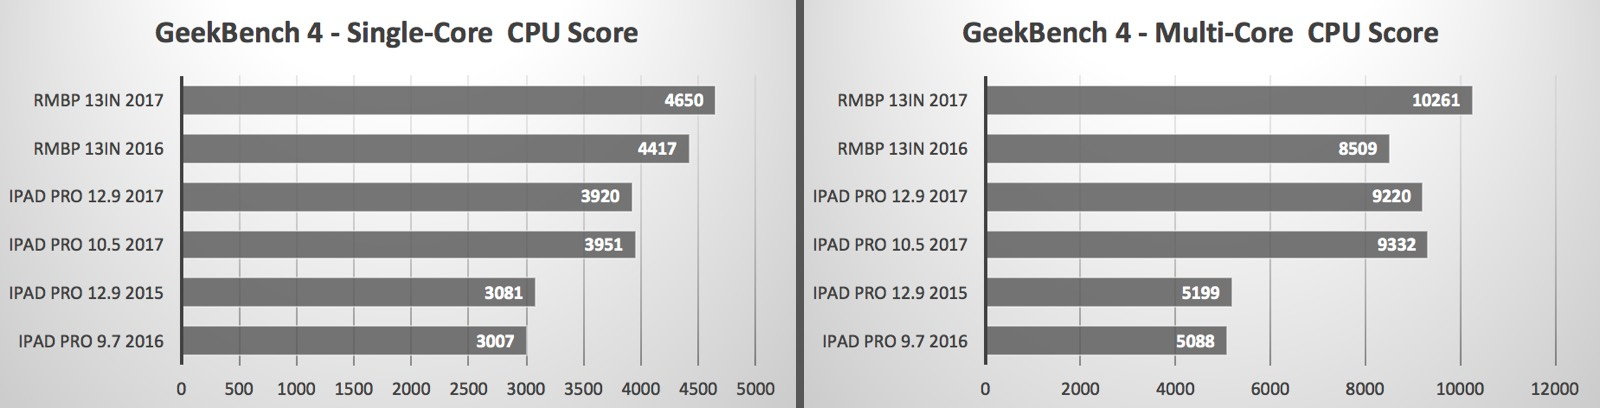 Geekbench scores comparing new iPad Pro models with MacBook Pros.